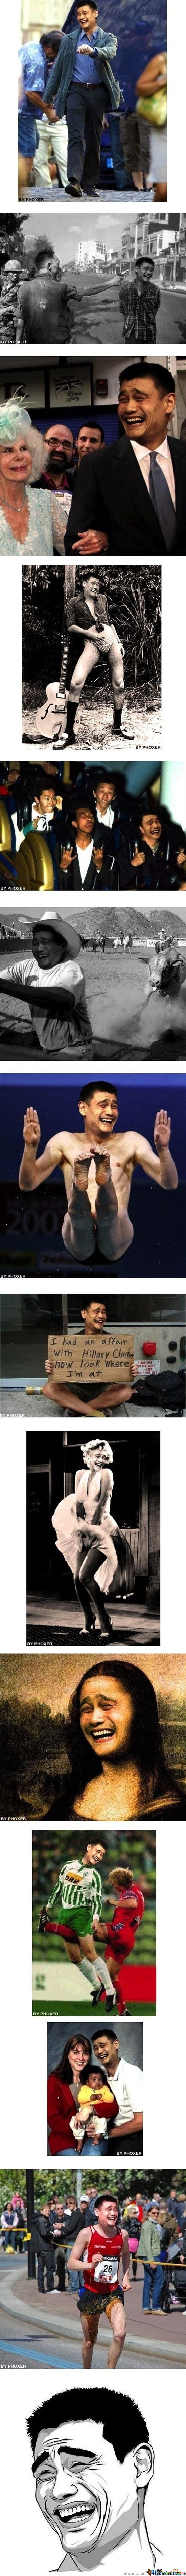 Yao Ming is everywhere!